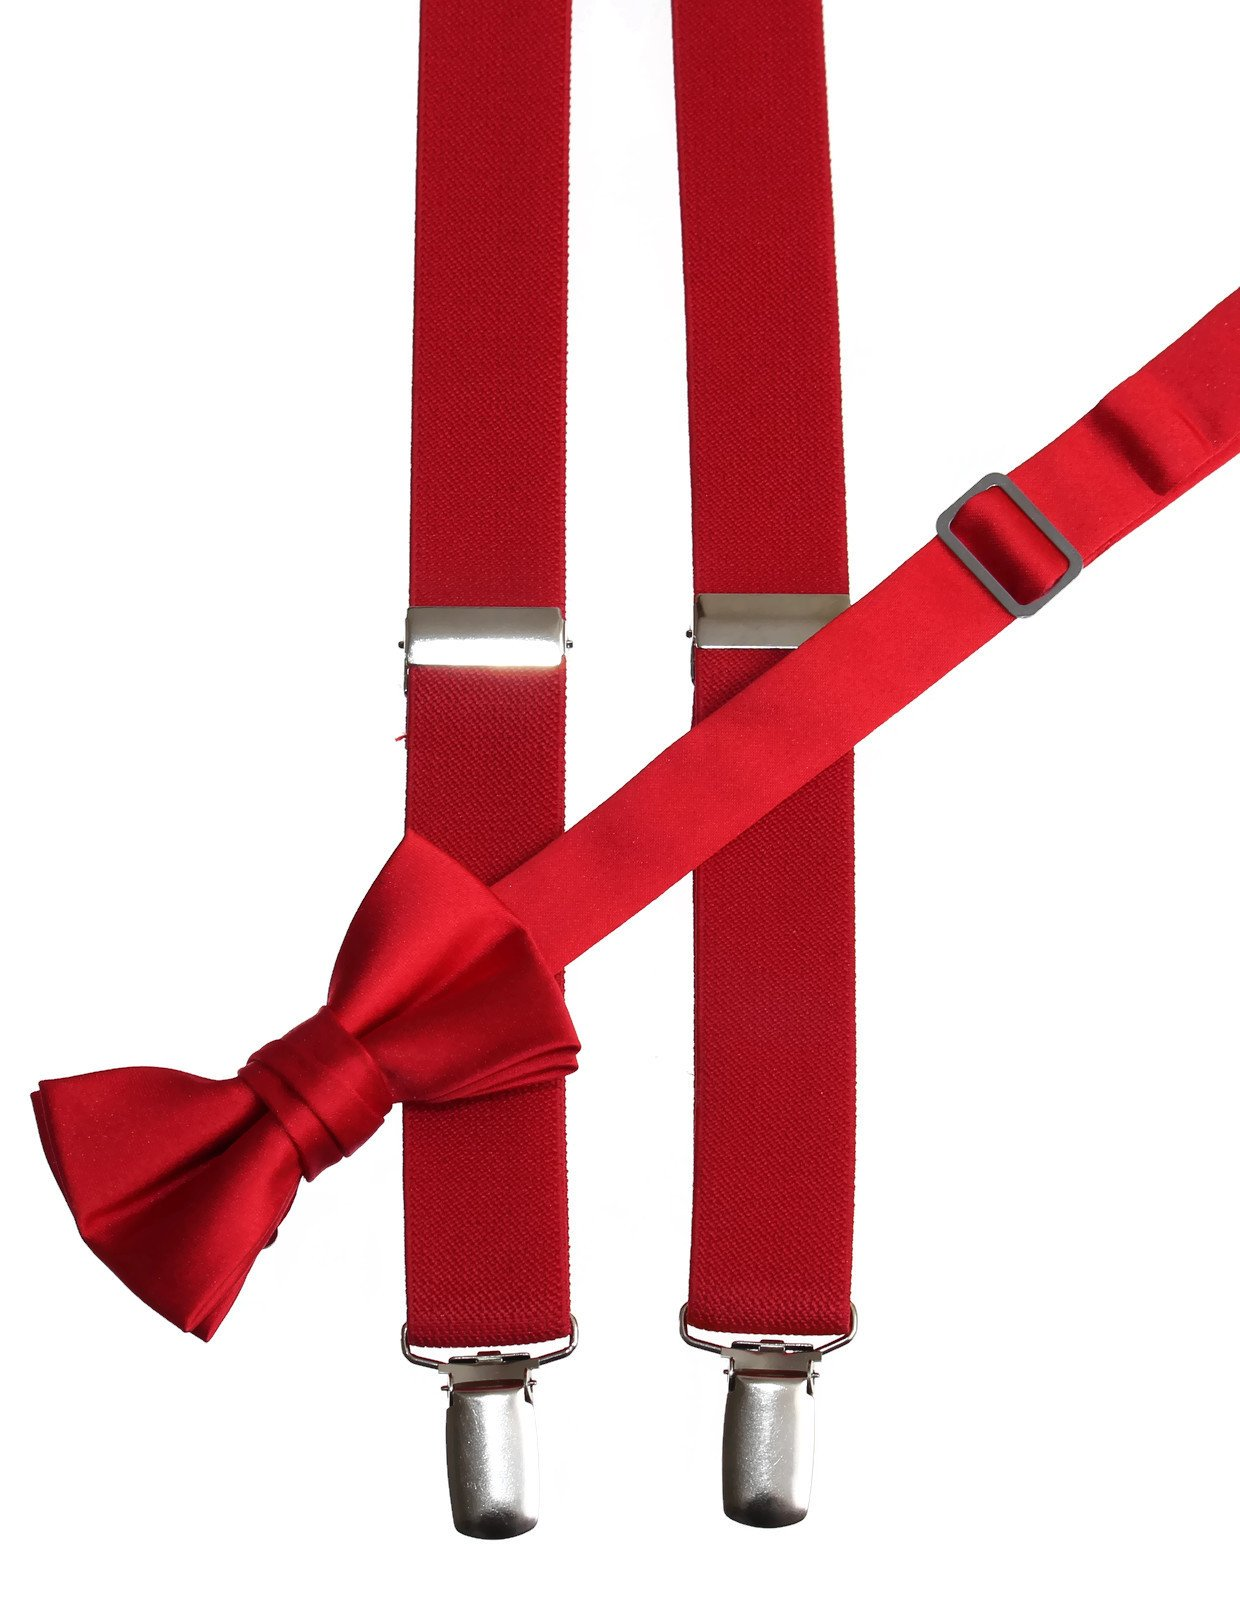 Matching Red Adjustable Suspender and Bow Tie Sets, Kids to Adults Sizing (30'' Boys Ages 6-11)